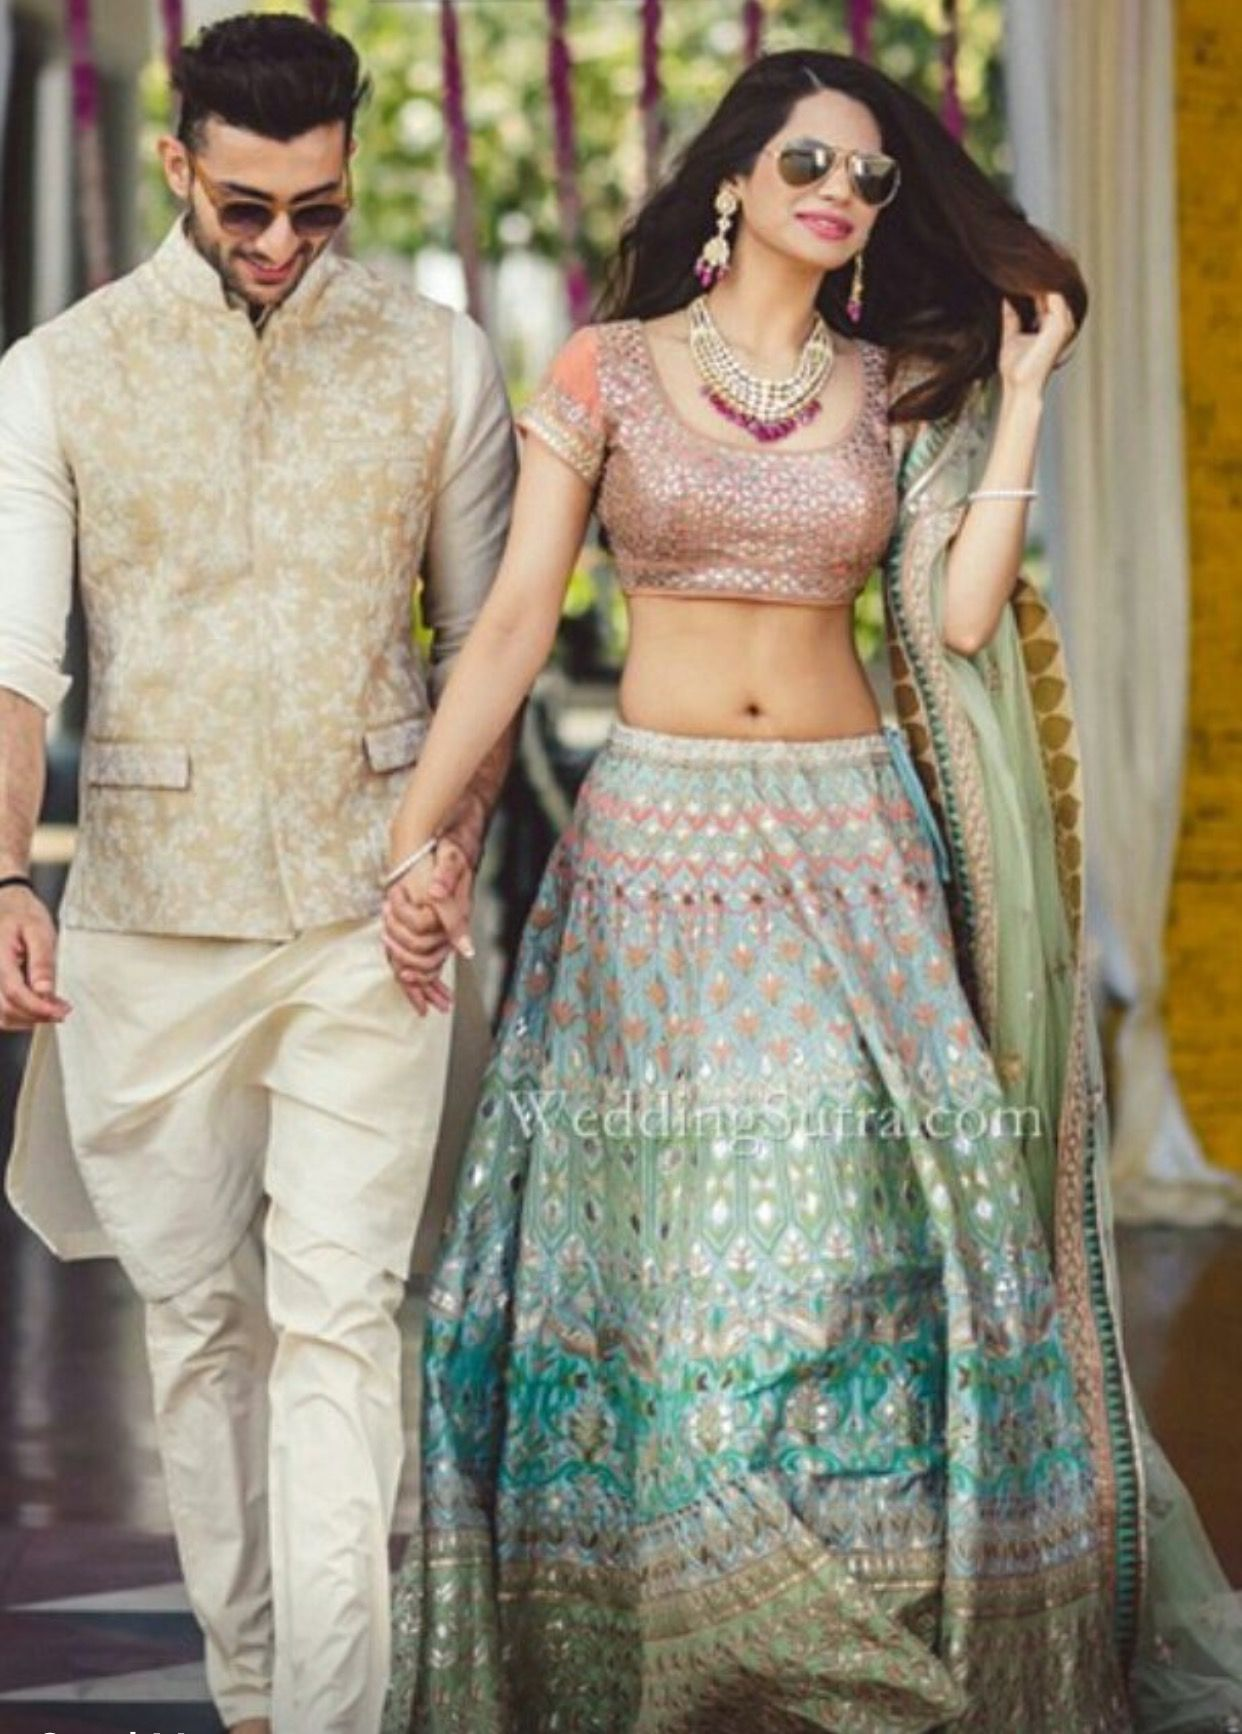 Pin by keerthana maya on marriage pinterest engagement for Wedding dresses indian style